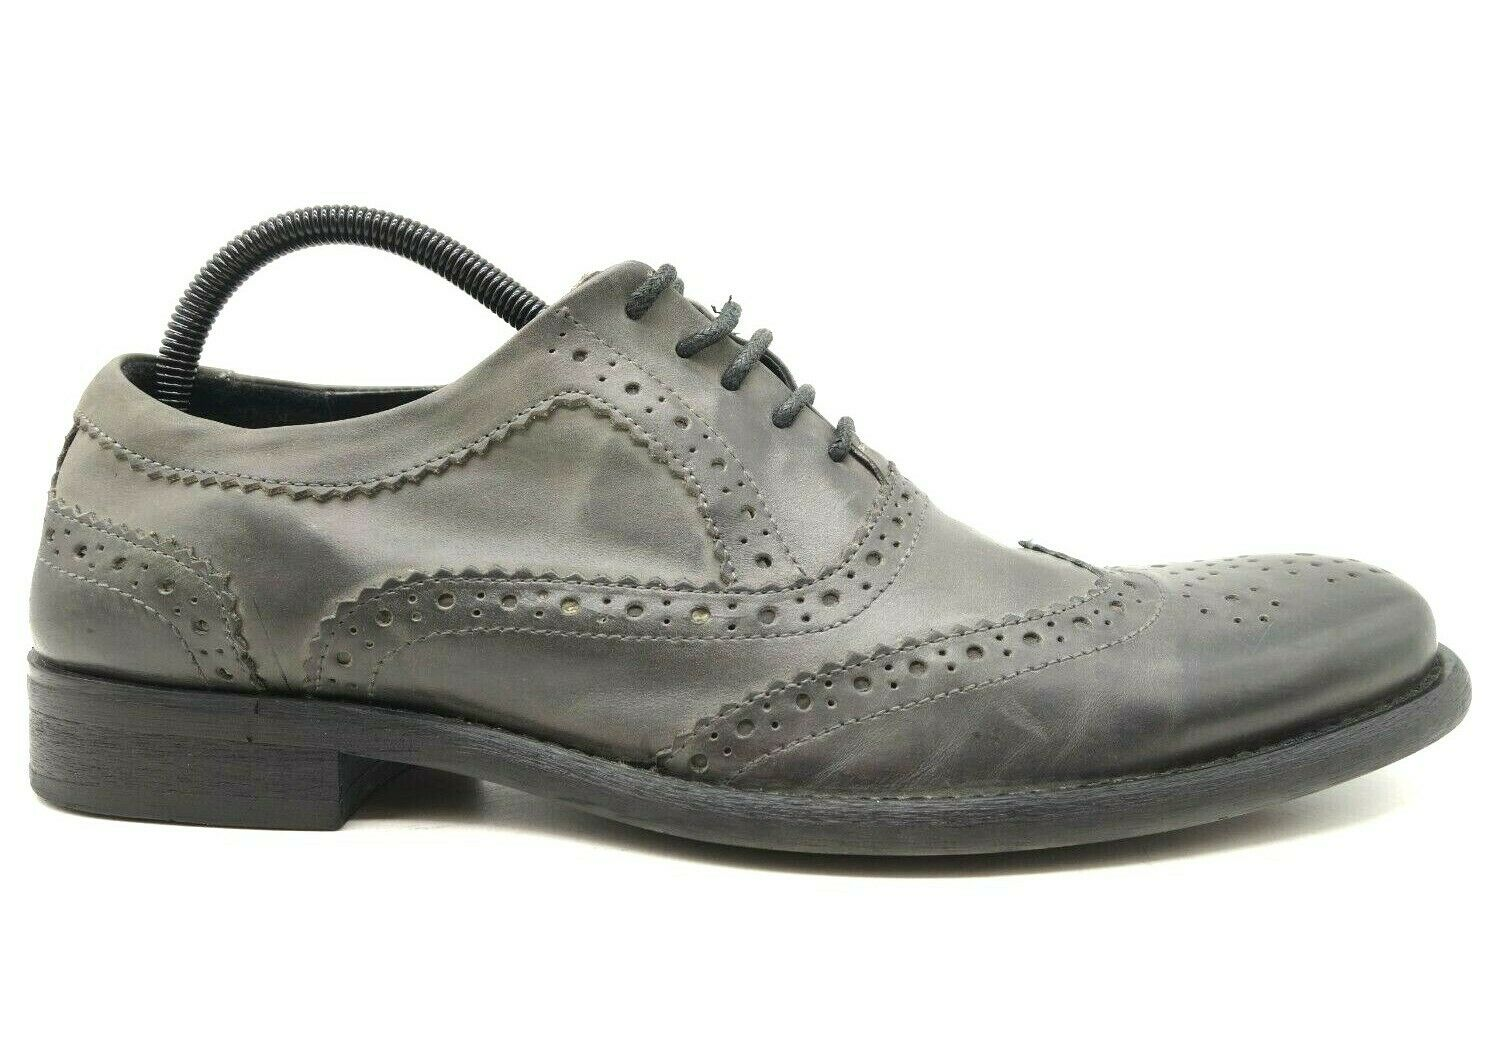 Kenneth Cole Reaction Leading Men Gray Leather Wingtip Oxfords Shoes Men's 11